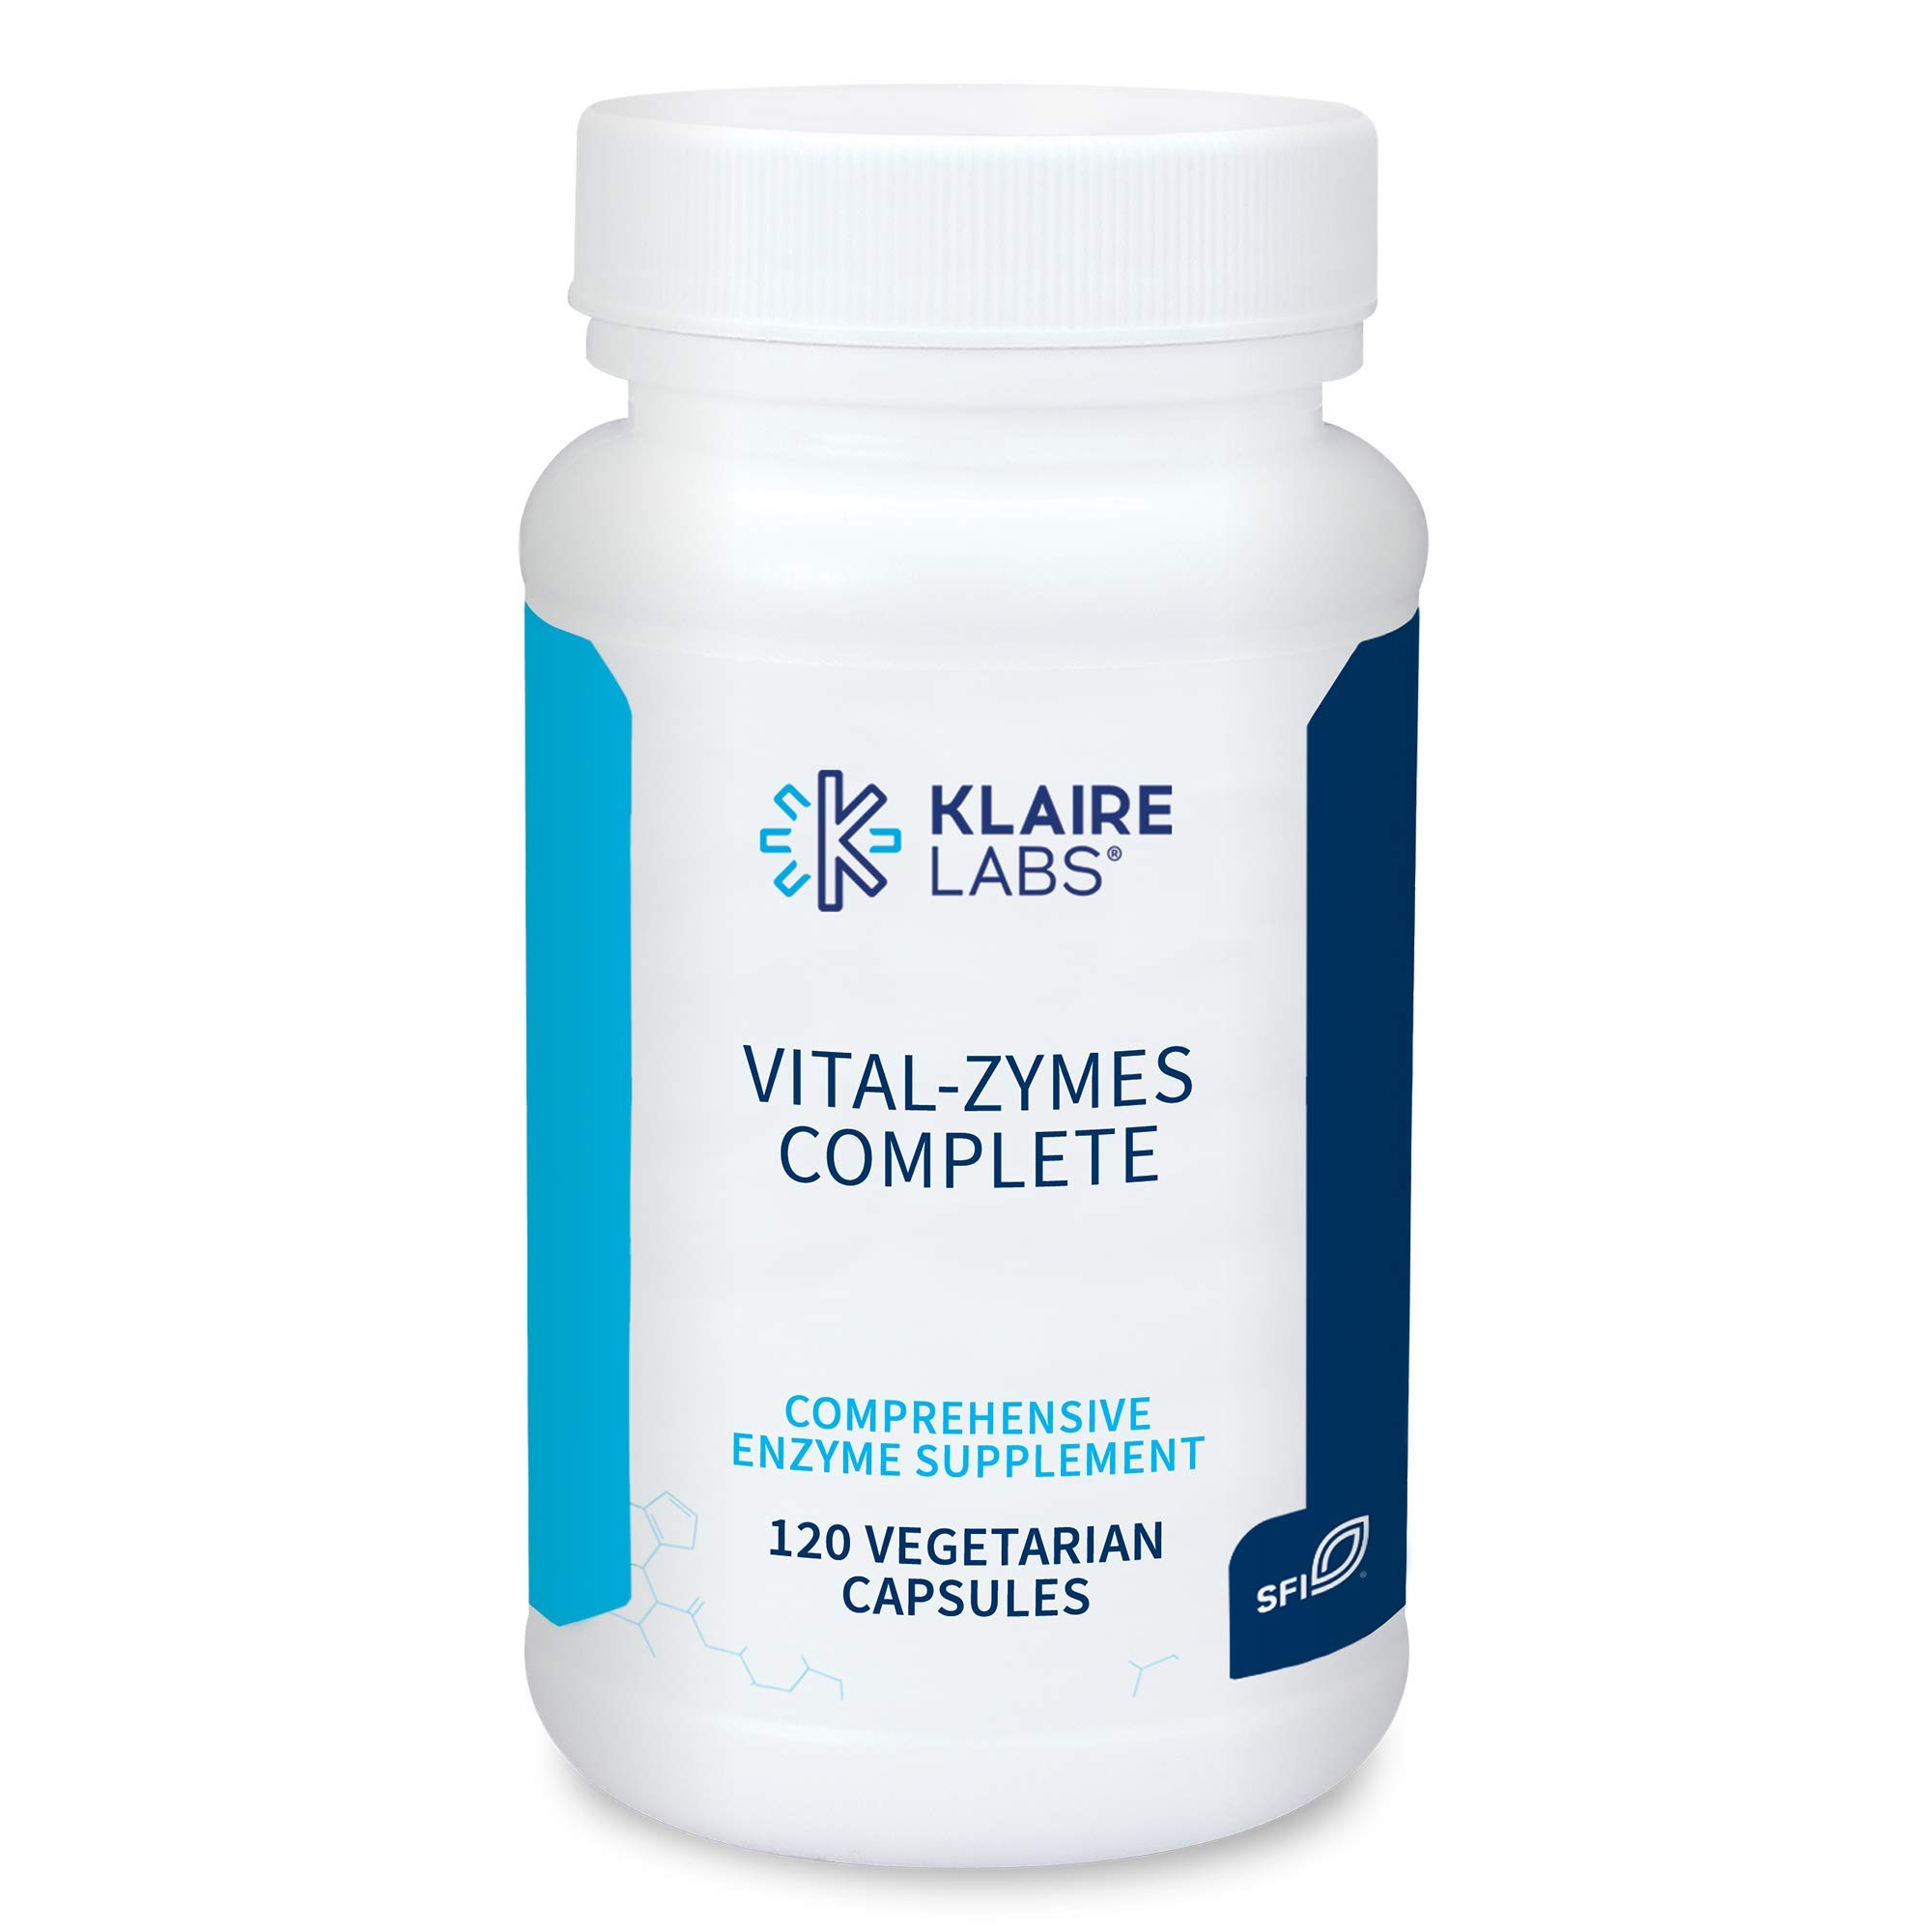 Klaire Labs Vital-Zymes Complete Digestive Enzymes - Helps Aid Digestion and Breakdown Proteins, Peptides, Carbs, Sugars, Fats & Fibers - 20 Active Enzymes (DPP-IV Activity) (120 Count)